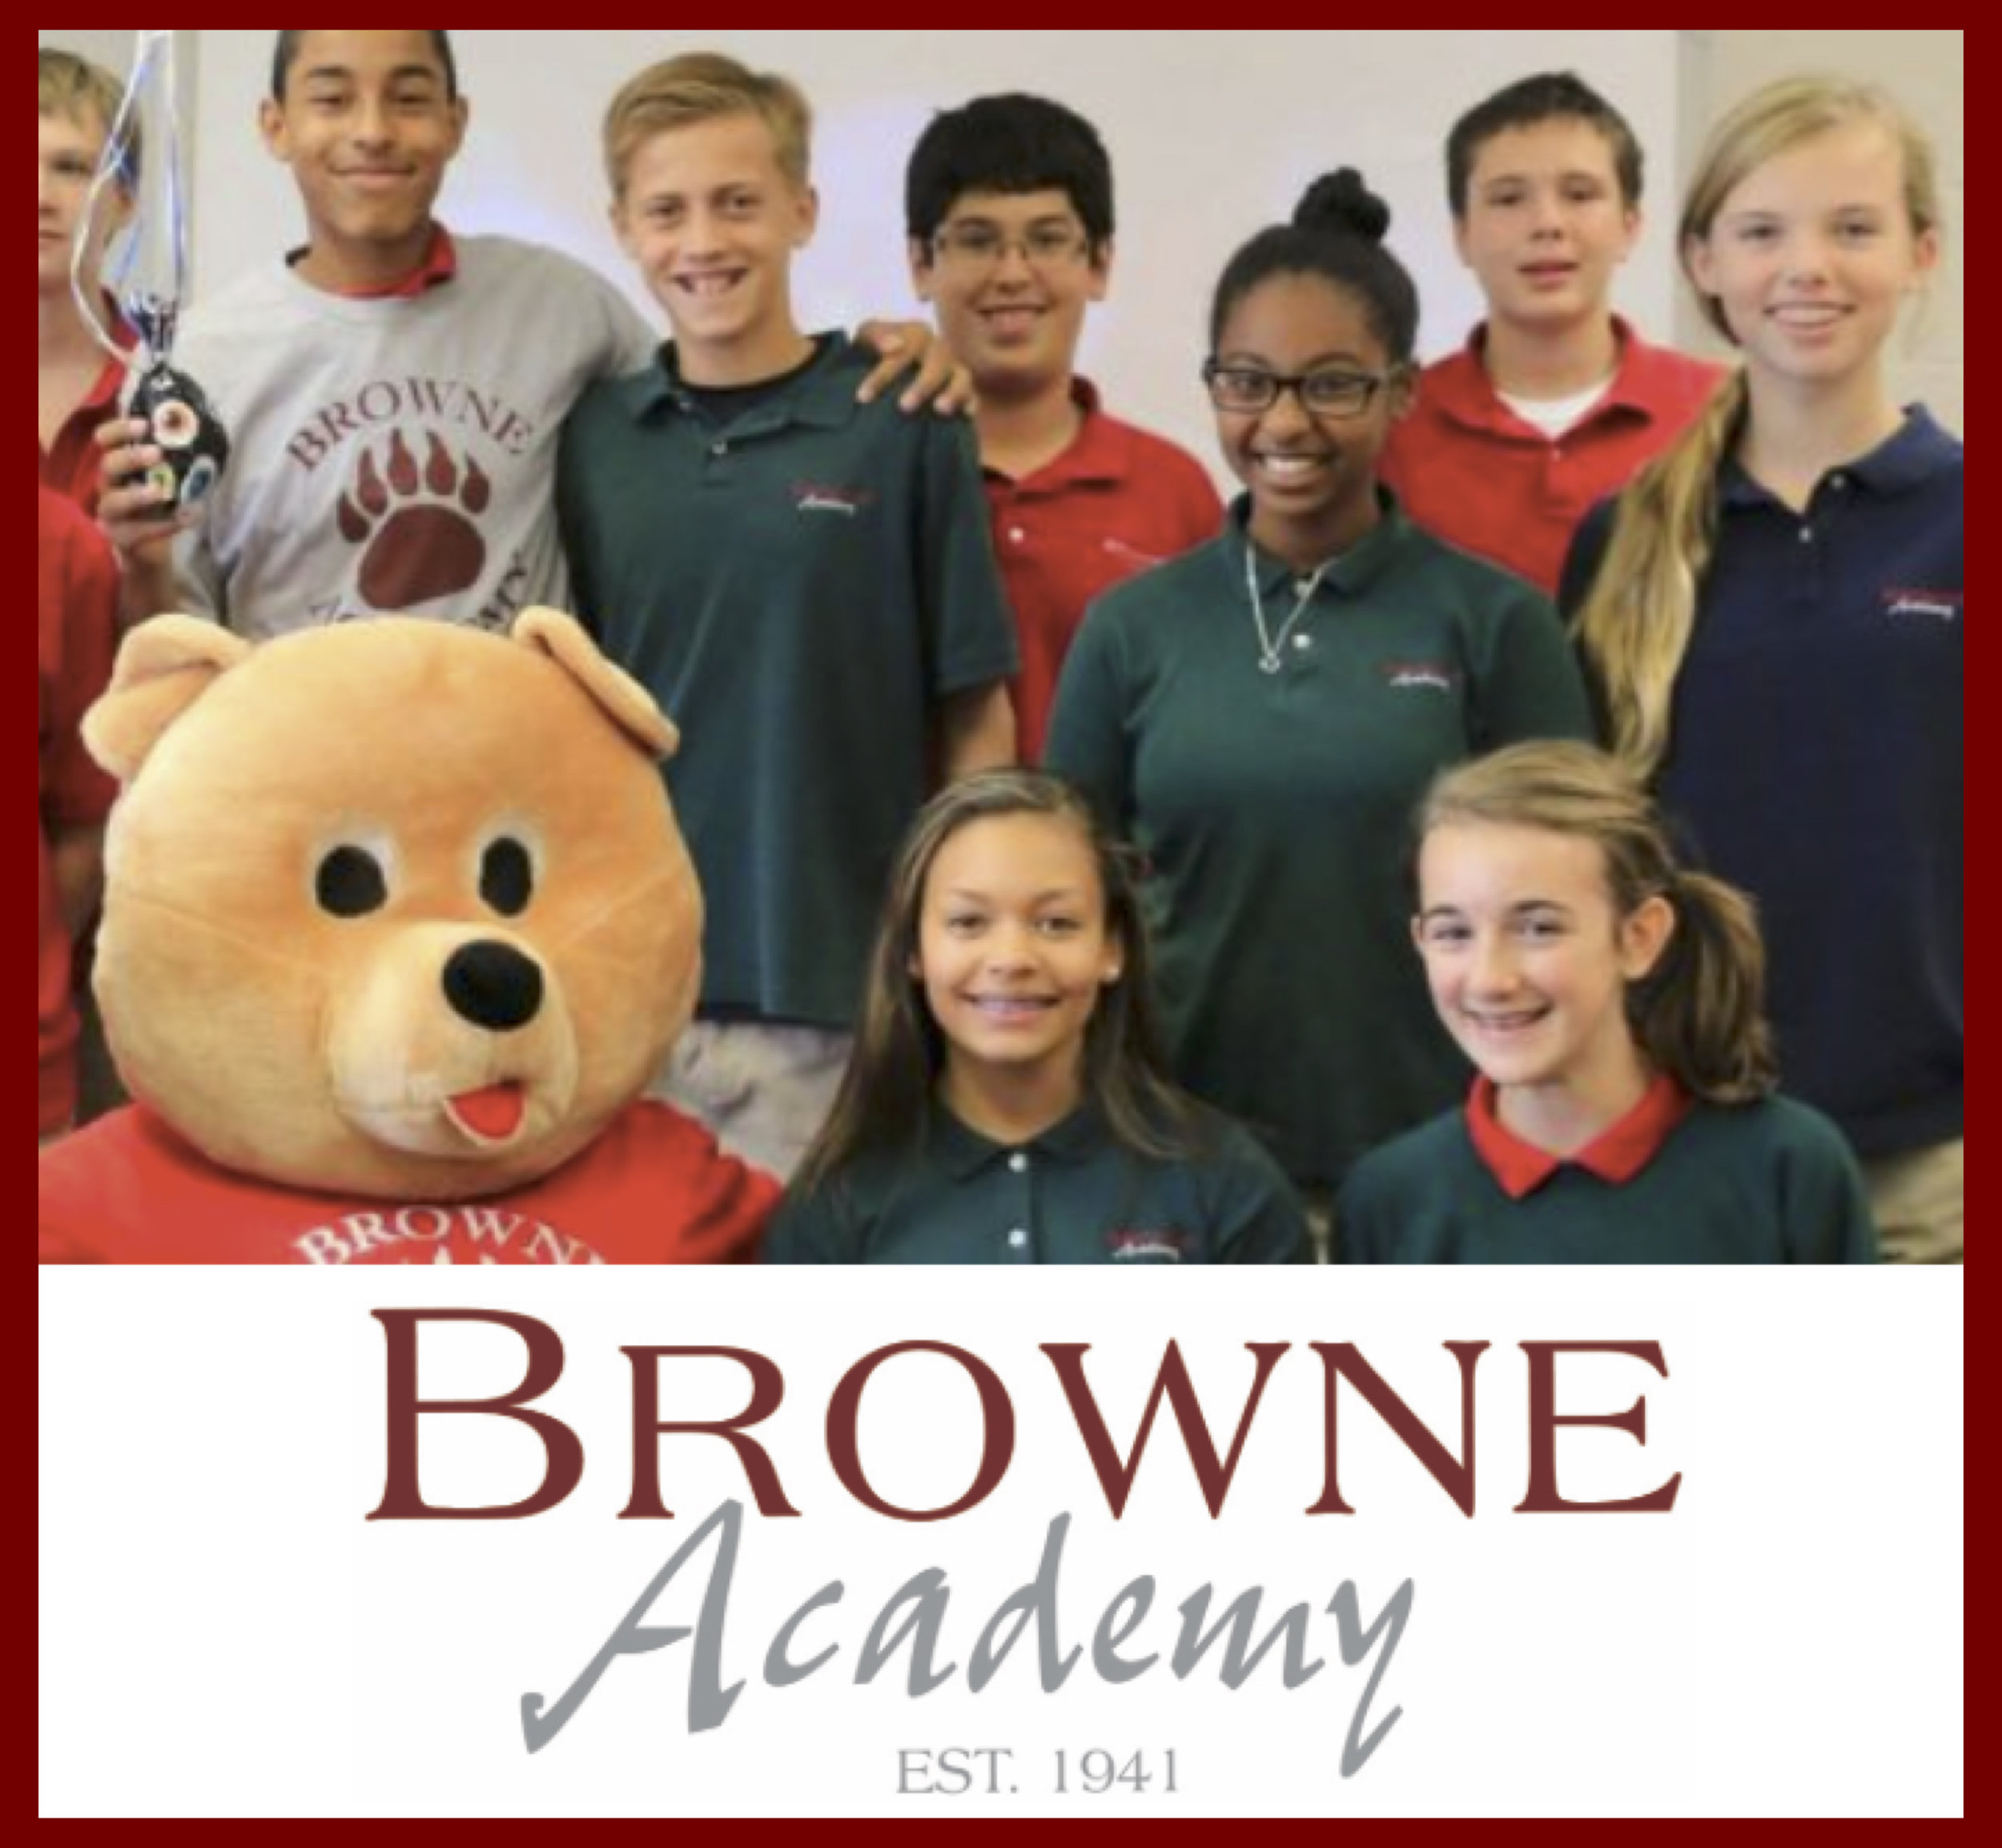 BROWNE ACADEMY